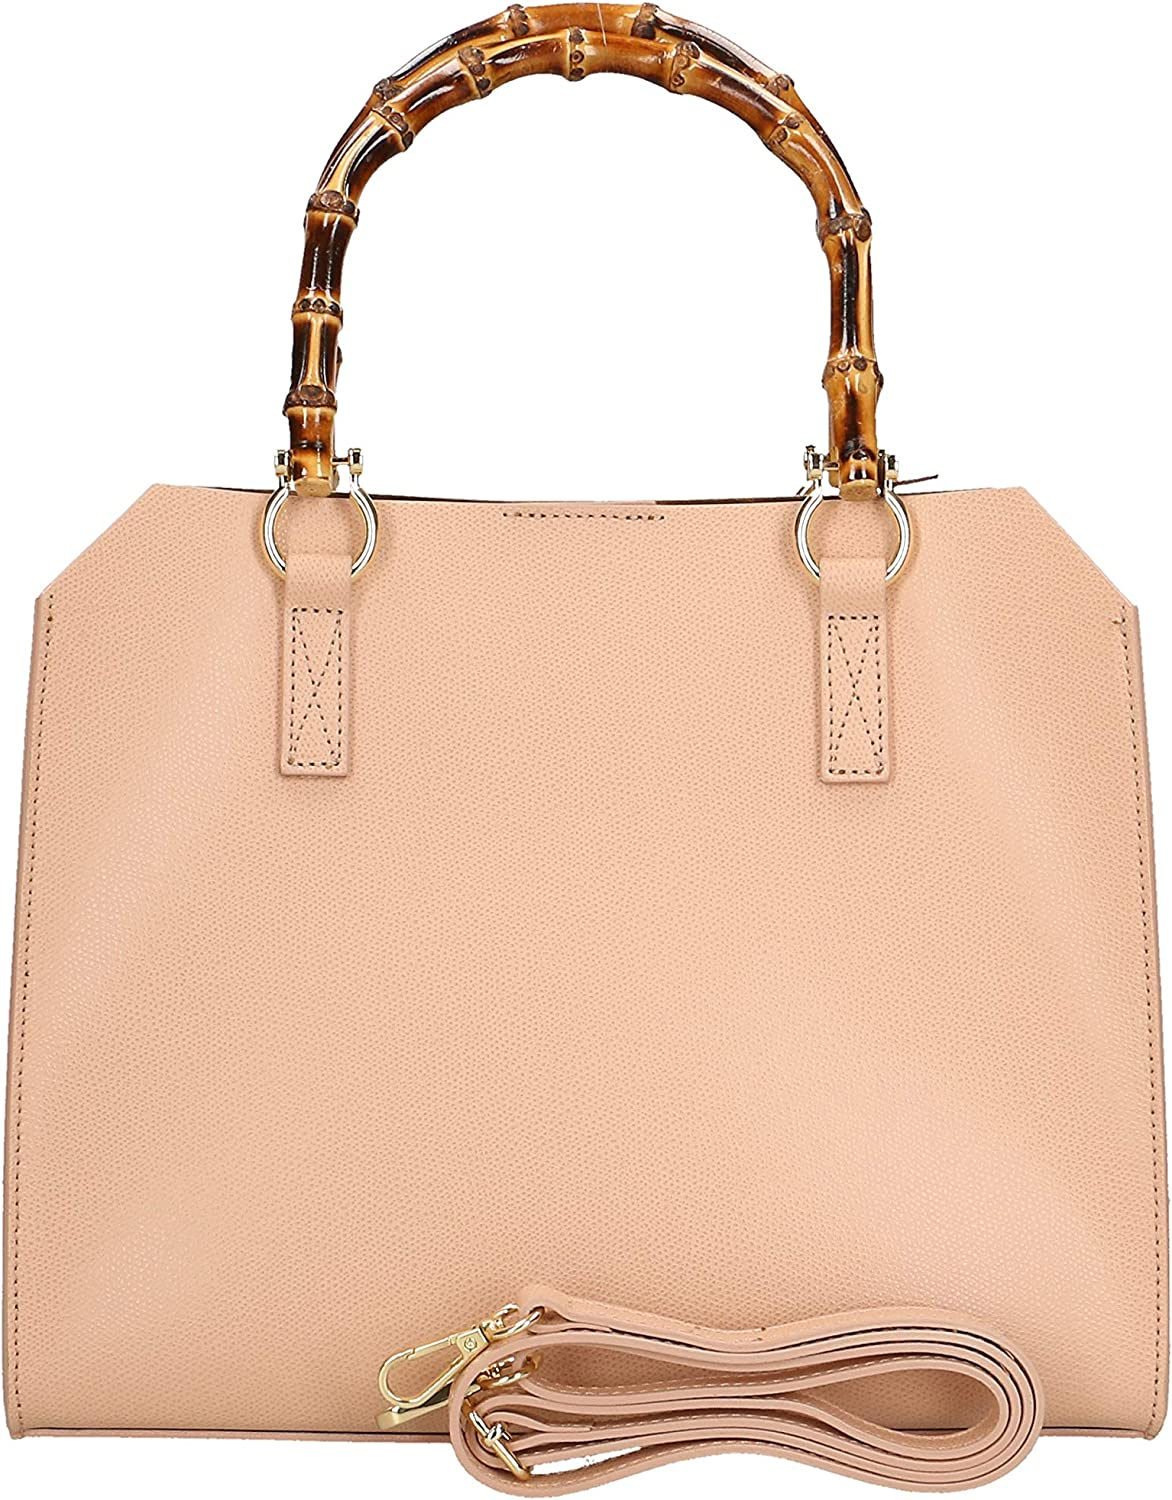 Chicca Borse Handbag in genuine leather made in Italy - 26x32x14 Cm Rose